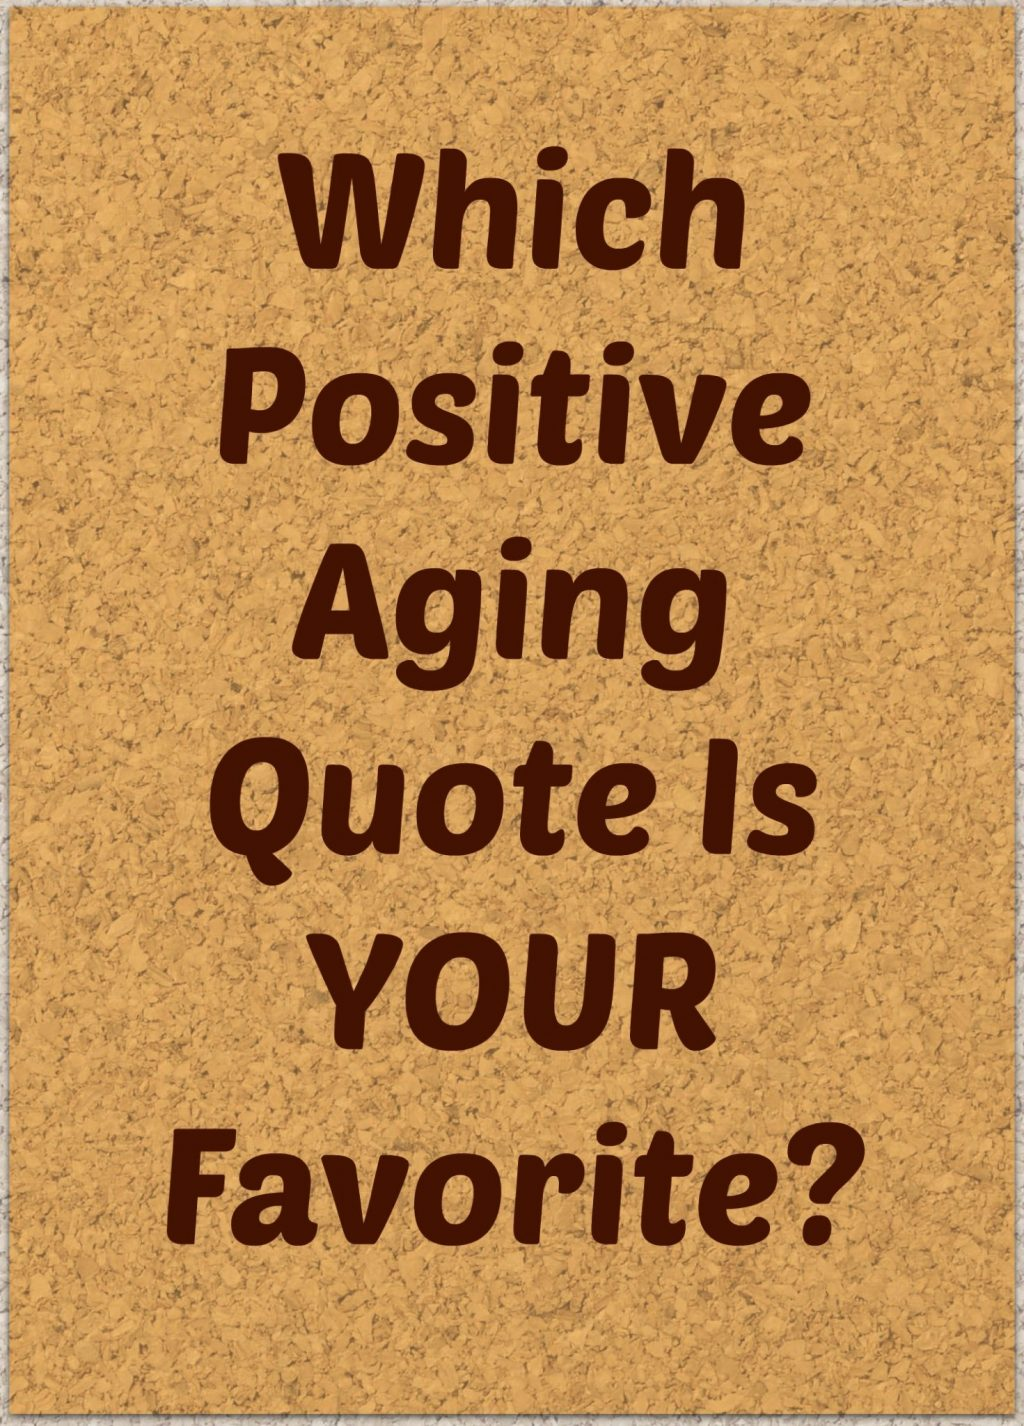 Positive Quote 50 Of The Best Positive Aging Quotes I Could Find